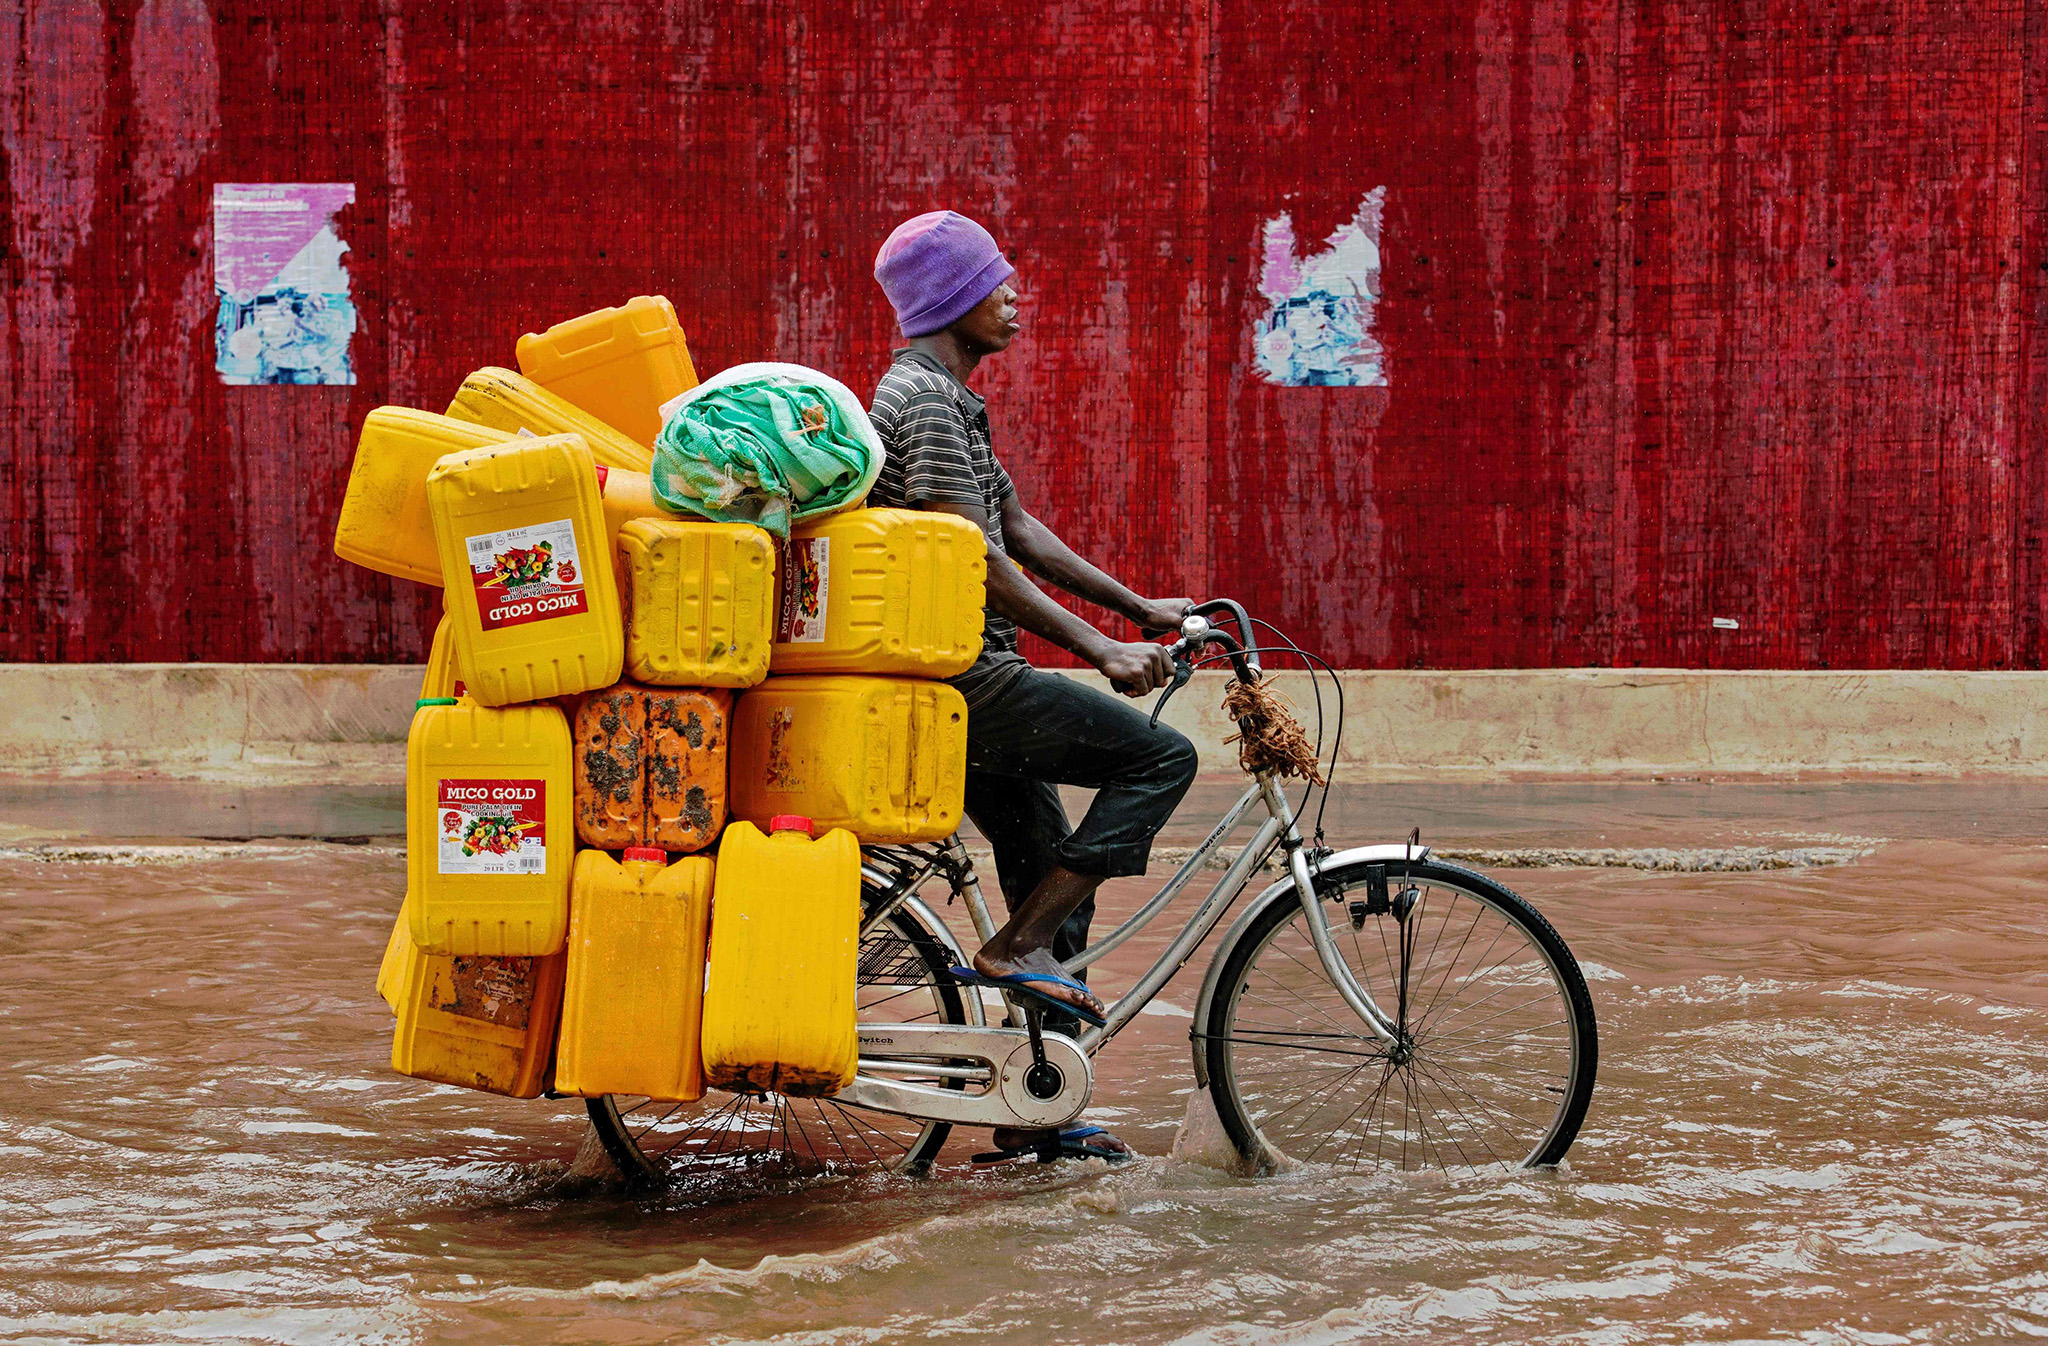 A man bicycles down a flooded street with empty cooking oil containers during a rain storm in Dar es Salaam, Tanzania on November 23, 2016. / AFP PHOTO / DANIEL HAYDUKDANIEL HAYDUK/AFP/Getty Images